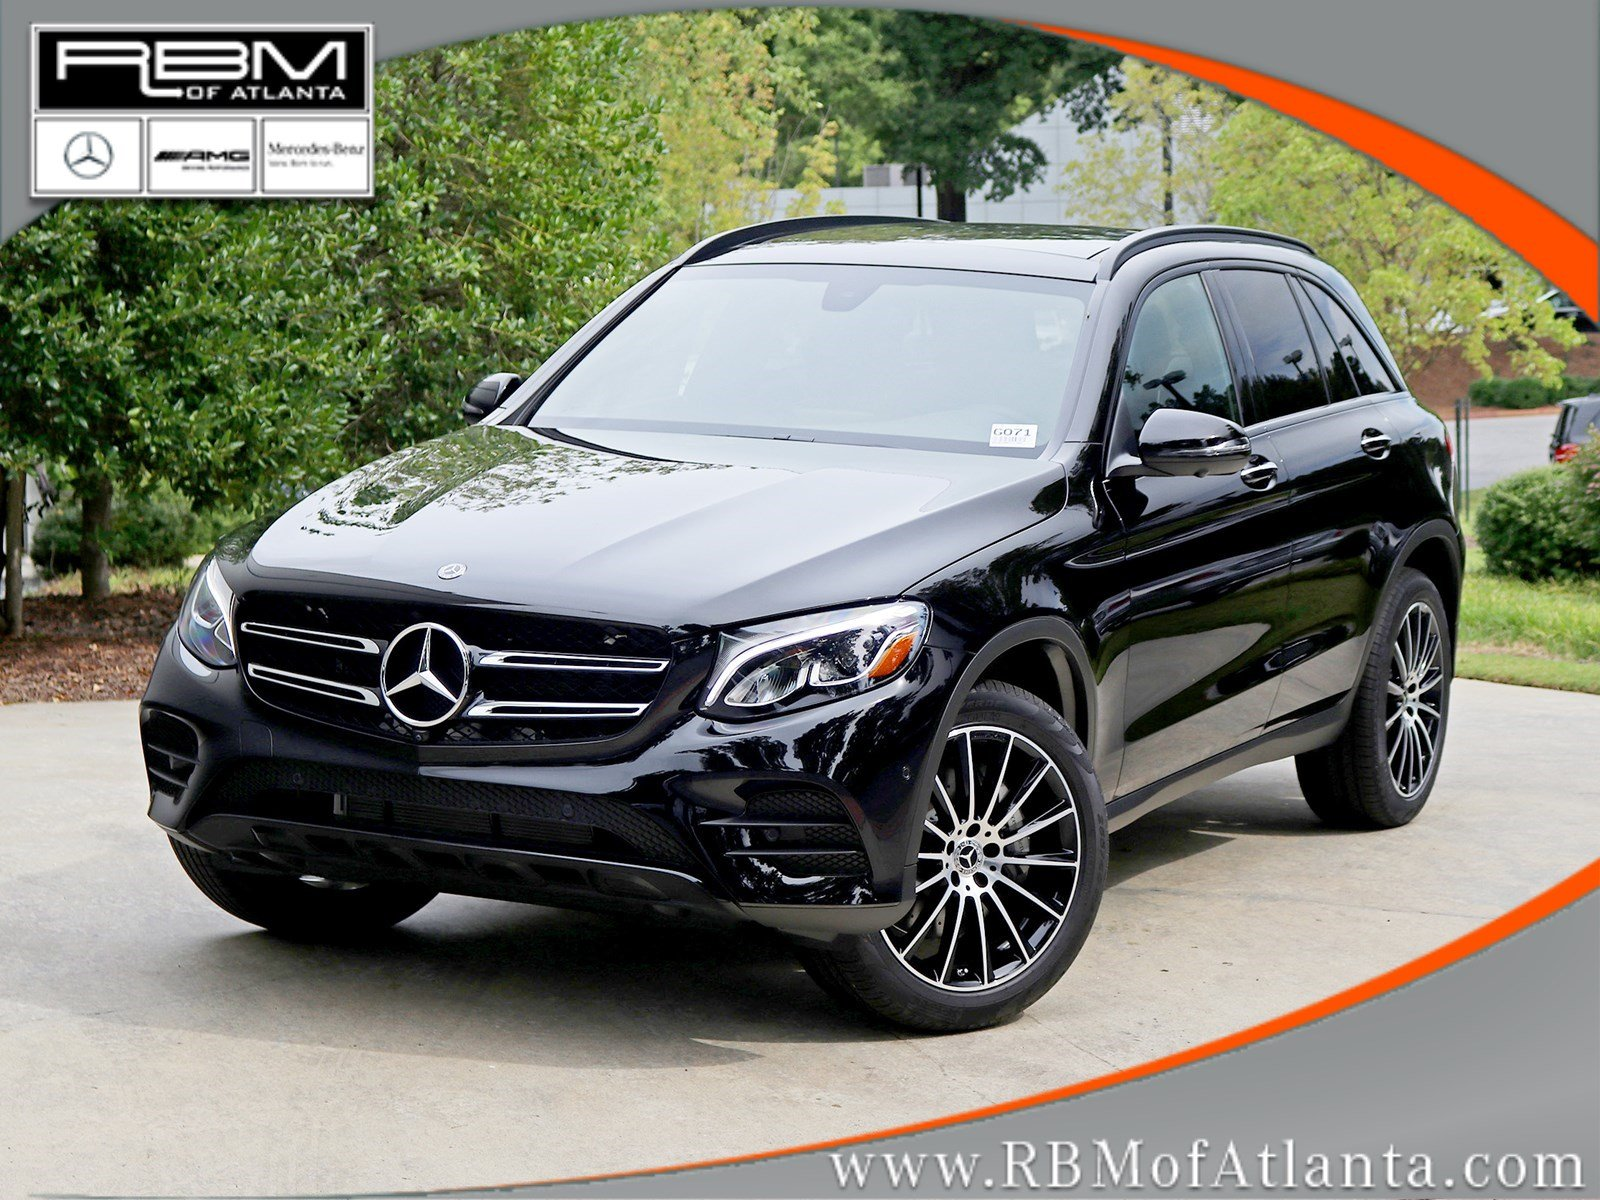 New 2019 Mercedes Benz GLC GLC 300 SUV in Atlanta G071